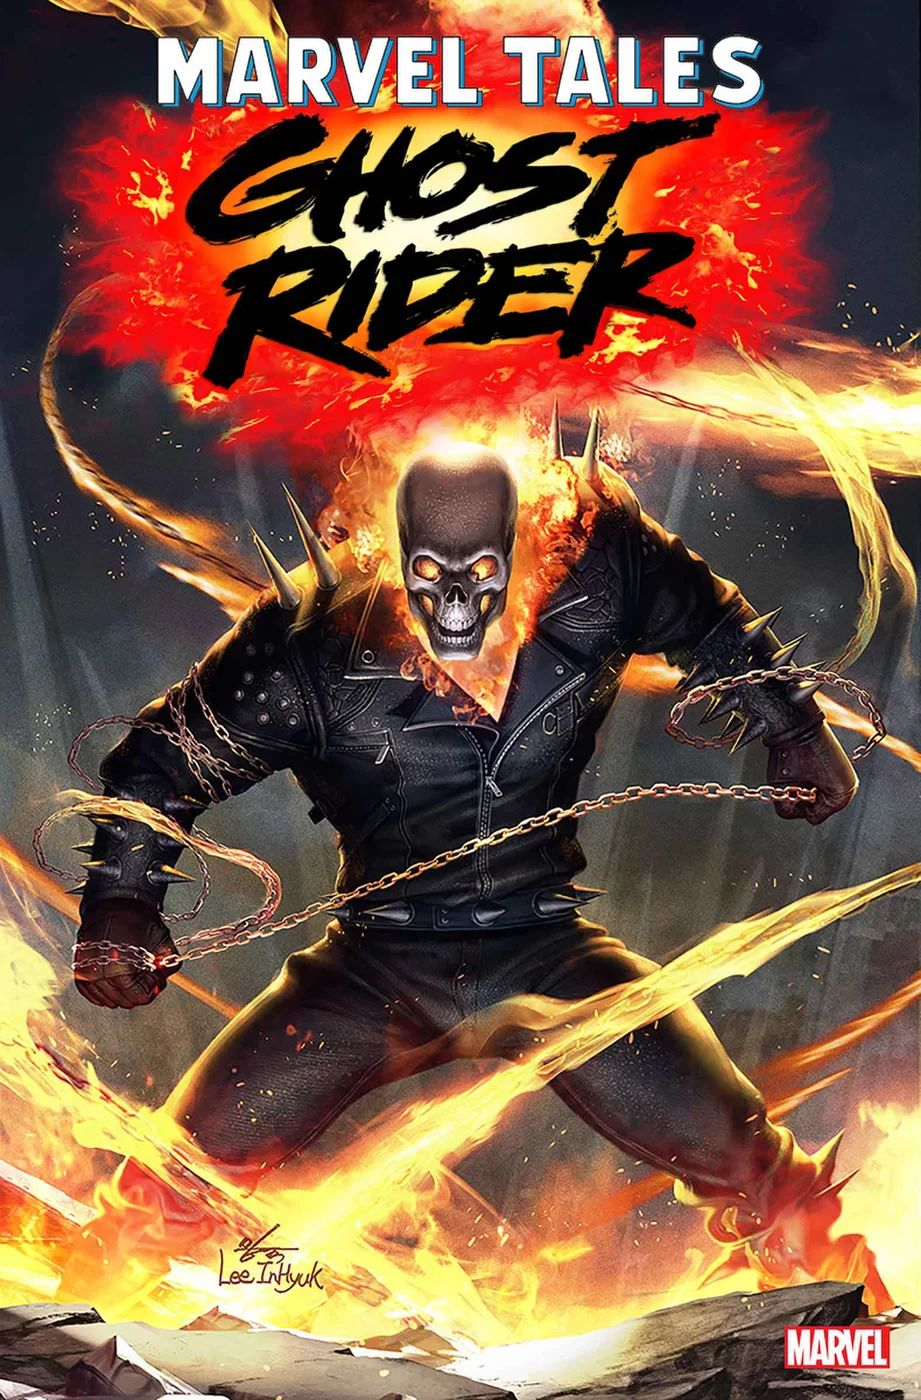 Marvel Tales: Ghost Rider